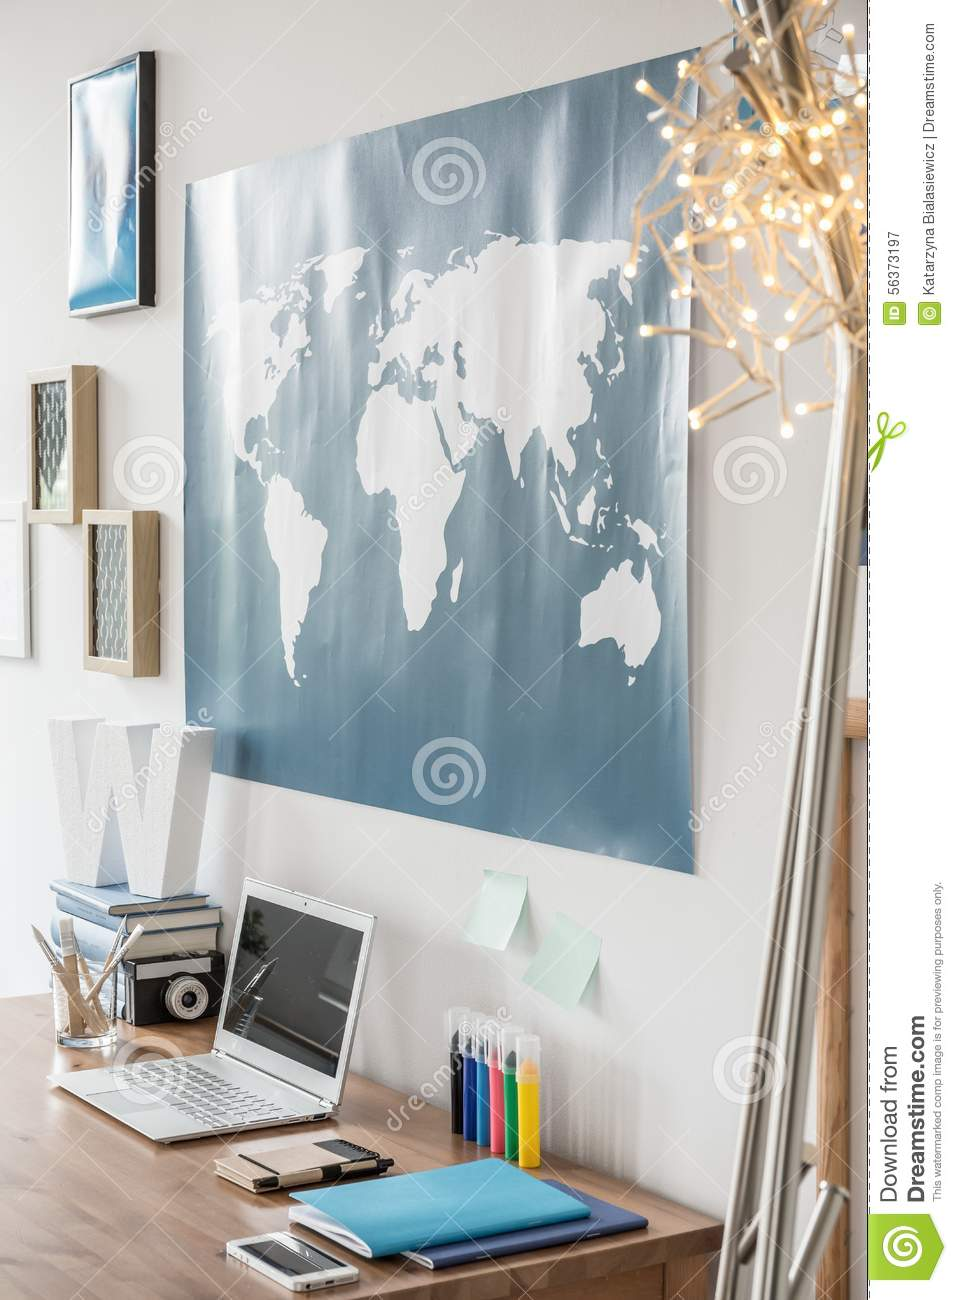 Workspace with world map stock image image of house 56373197 workspace with world map above the desk gumiabroncs Images